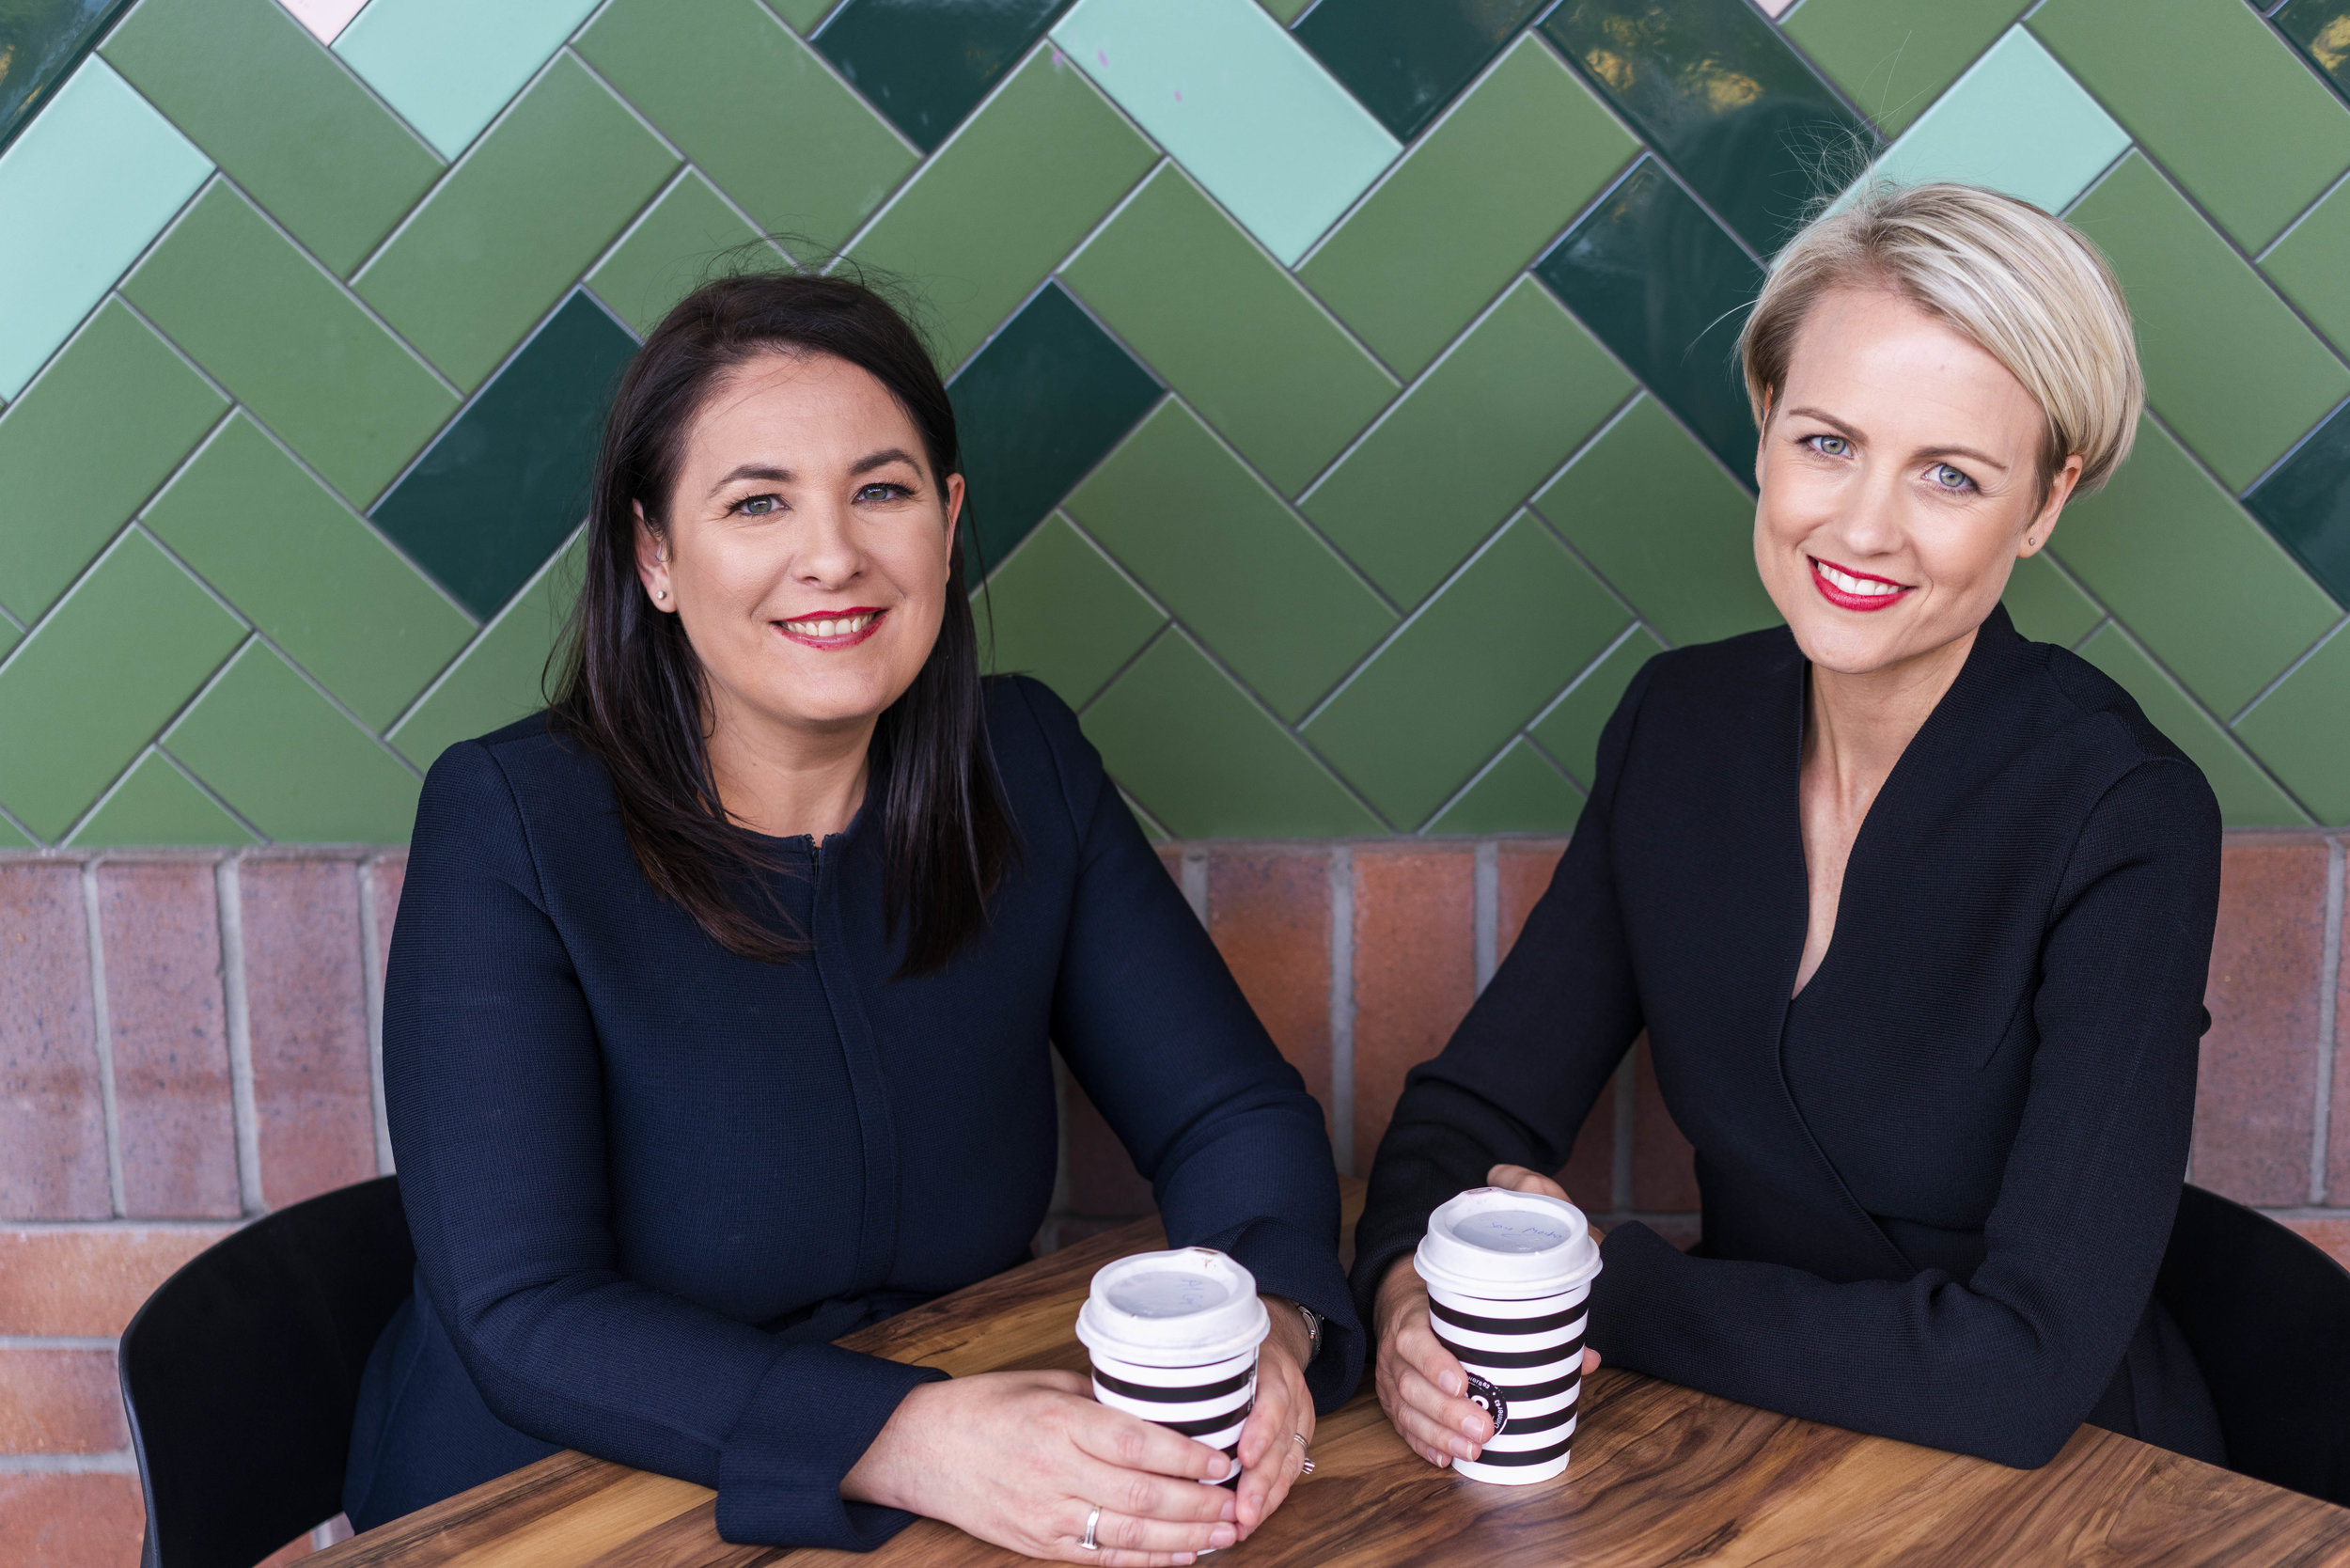 Louise O'Reilly and Erin Shaw - Brisbane Family Lawyers